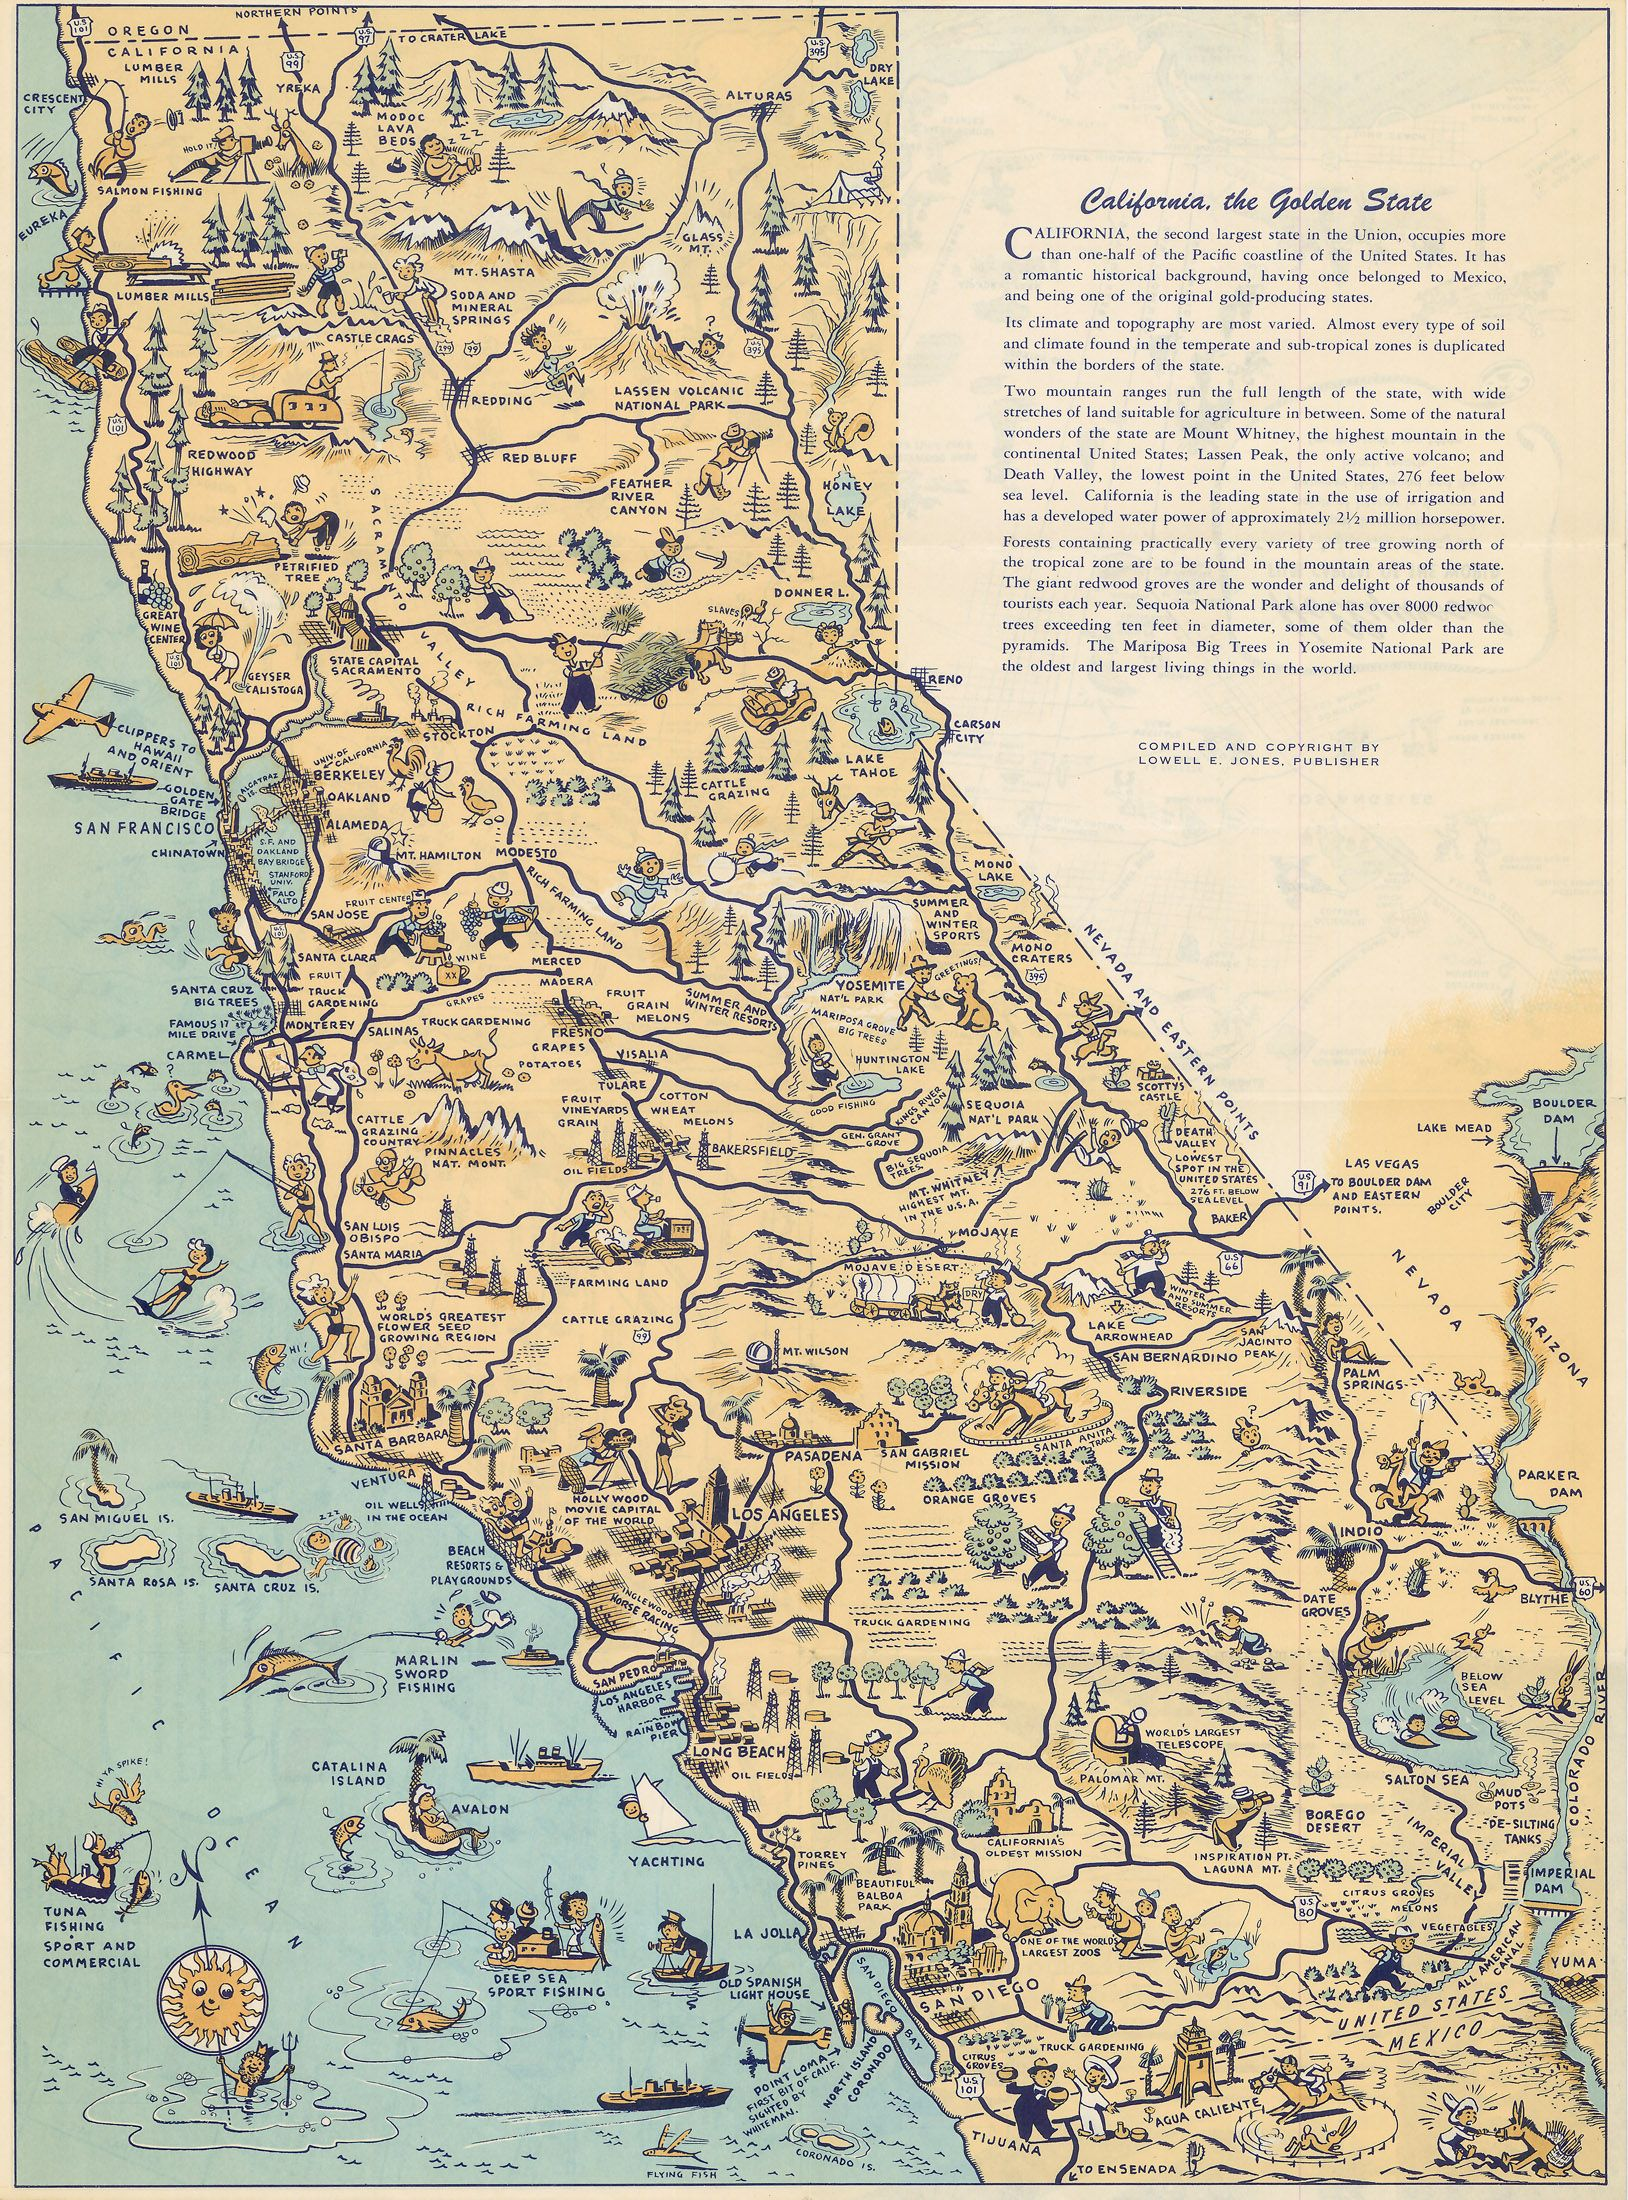 Map Of California Hollywood.Whimsical Old Map Depicts California At A Time When Hollywood Was A